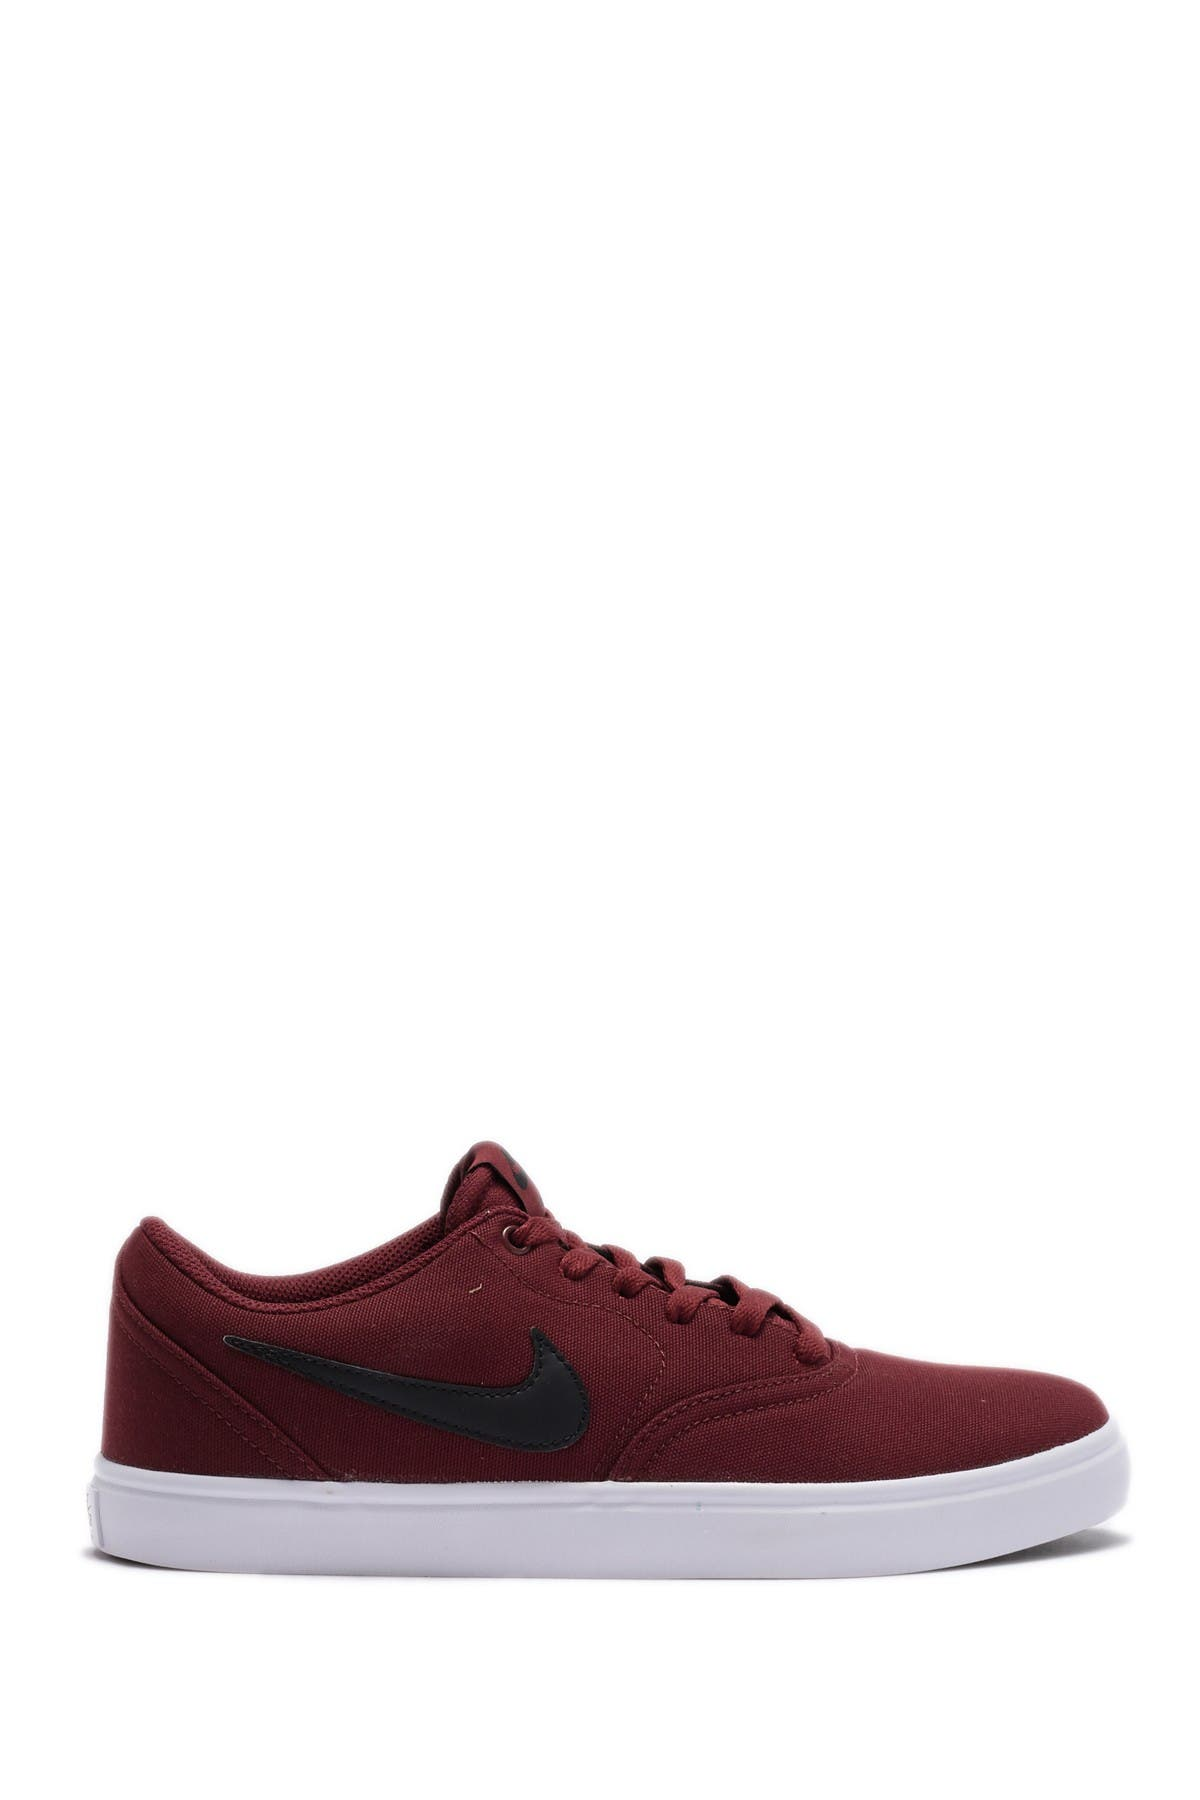 calor Relámpago Universidad  Nike | SB Check Solar Canvas Sneaker | Nordstrom Rack